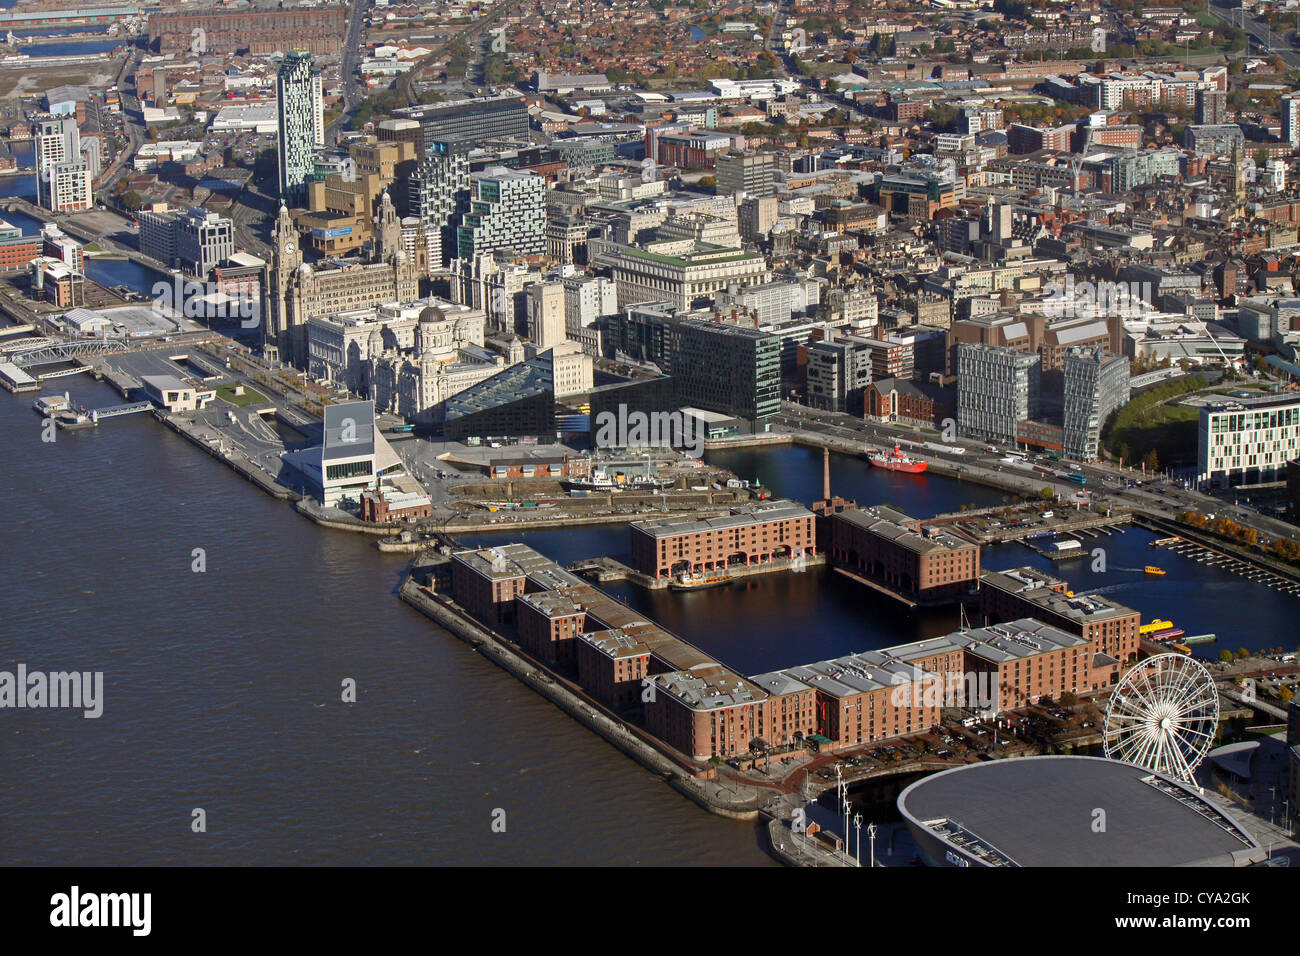 aerial view of Liverpool waterfront and Albert Dock - Stock Image